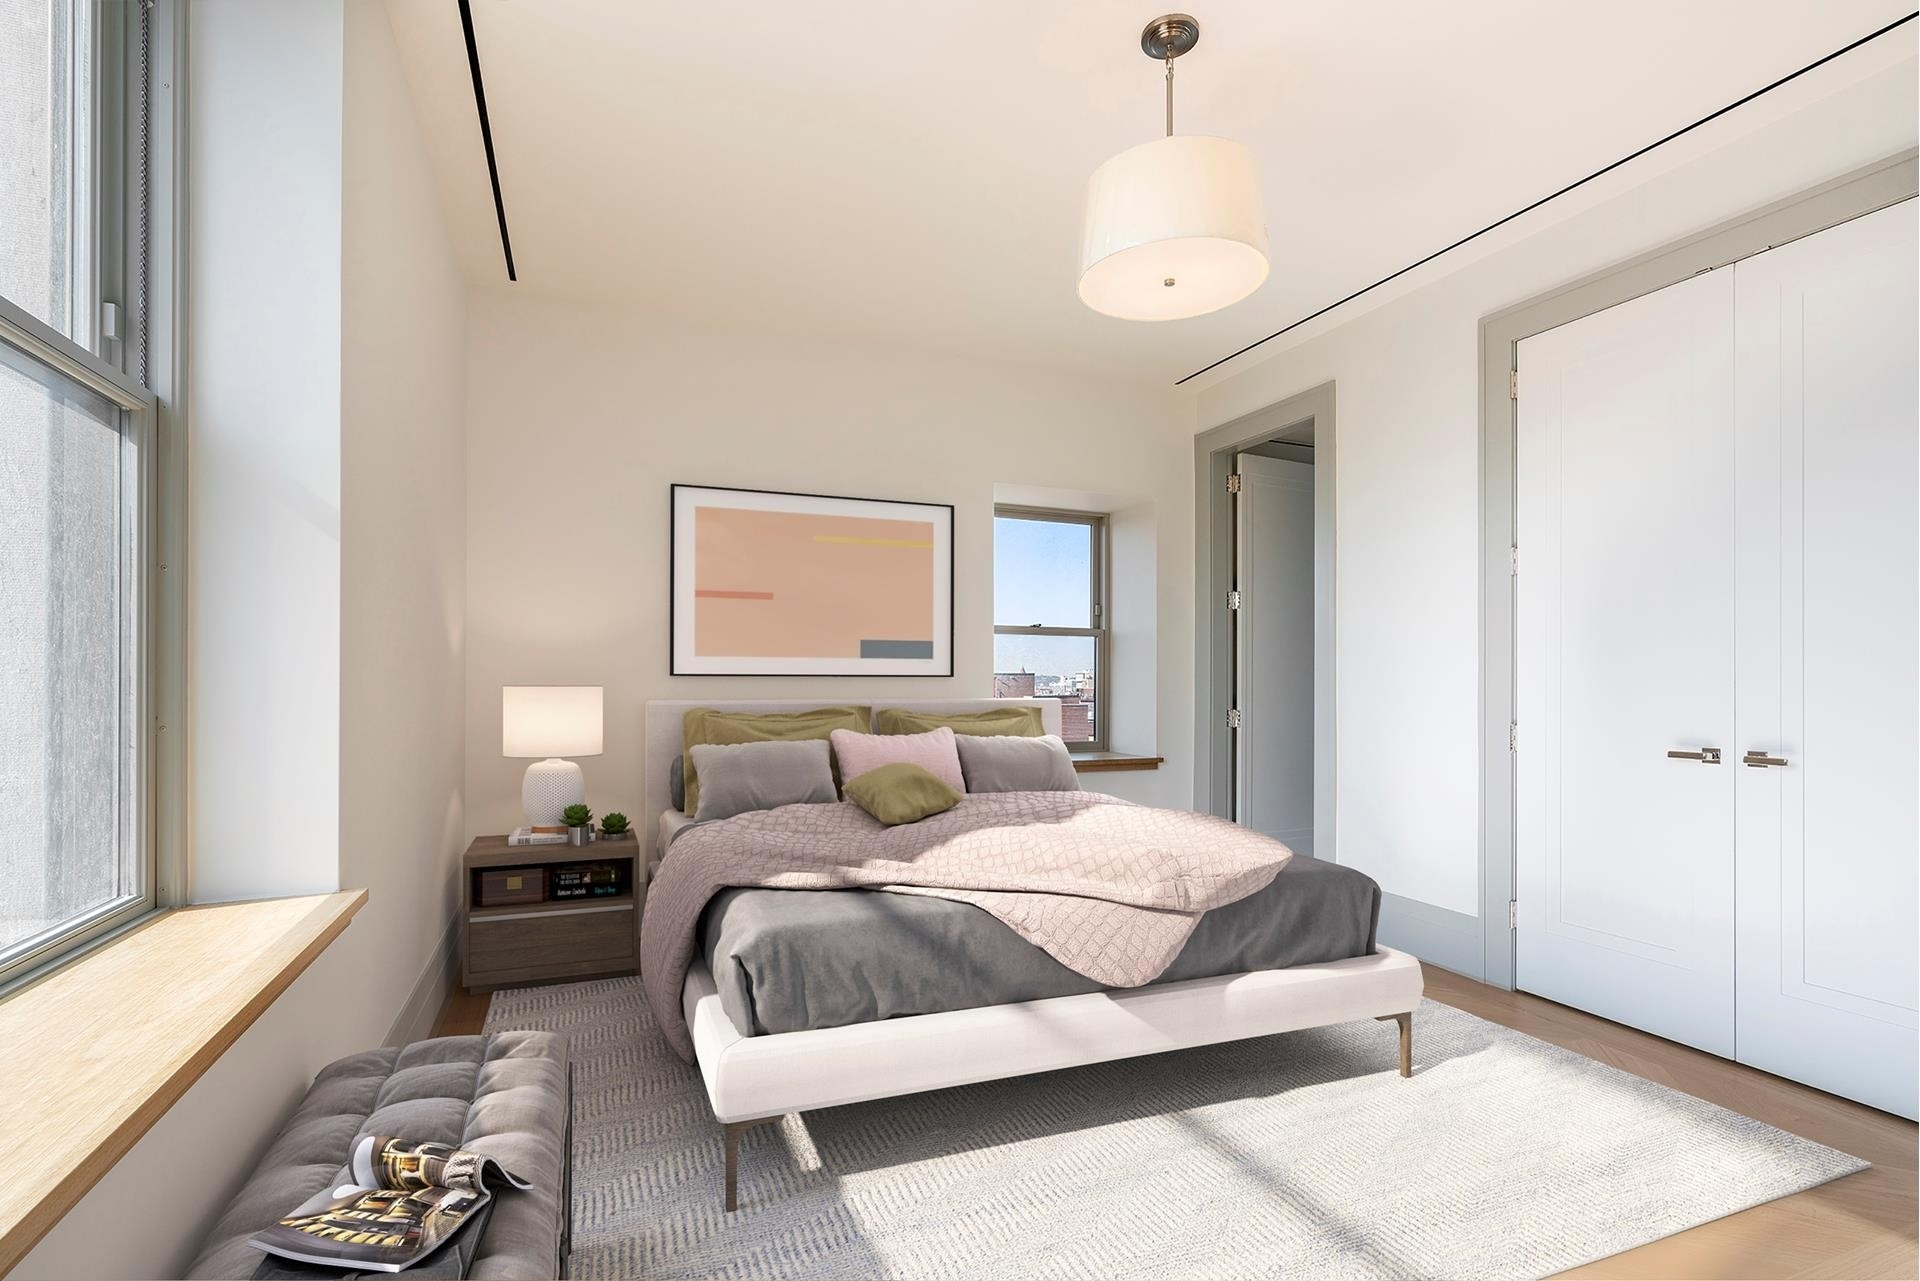 Property at Polhemus, 100 AMITY ST , RES12 Cobble Hill, Brooklyn, NY 11201